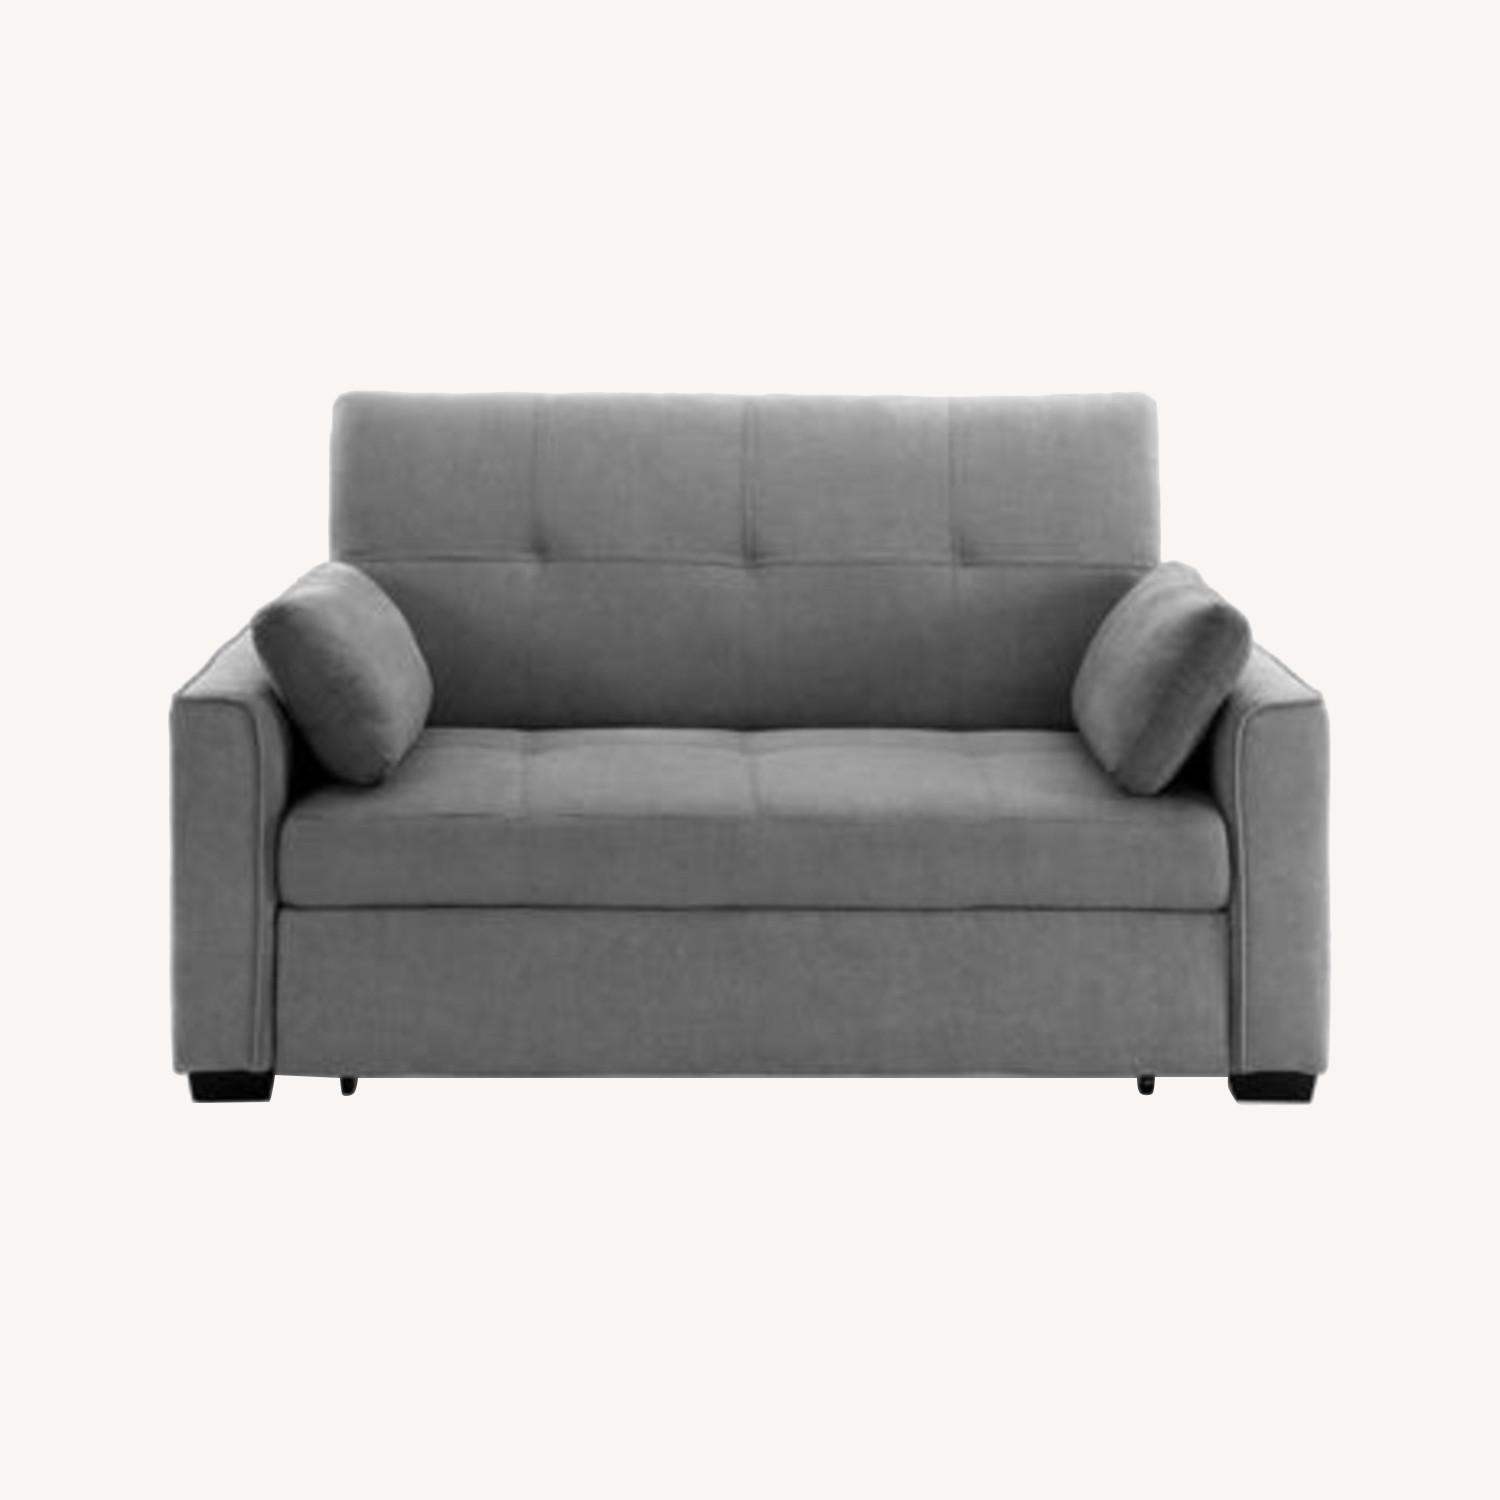 Light Grey Super Comfortable Sleeper Sofa - image-0